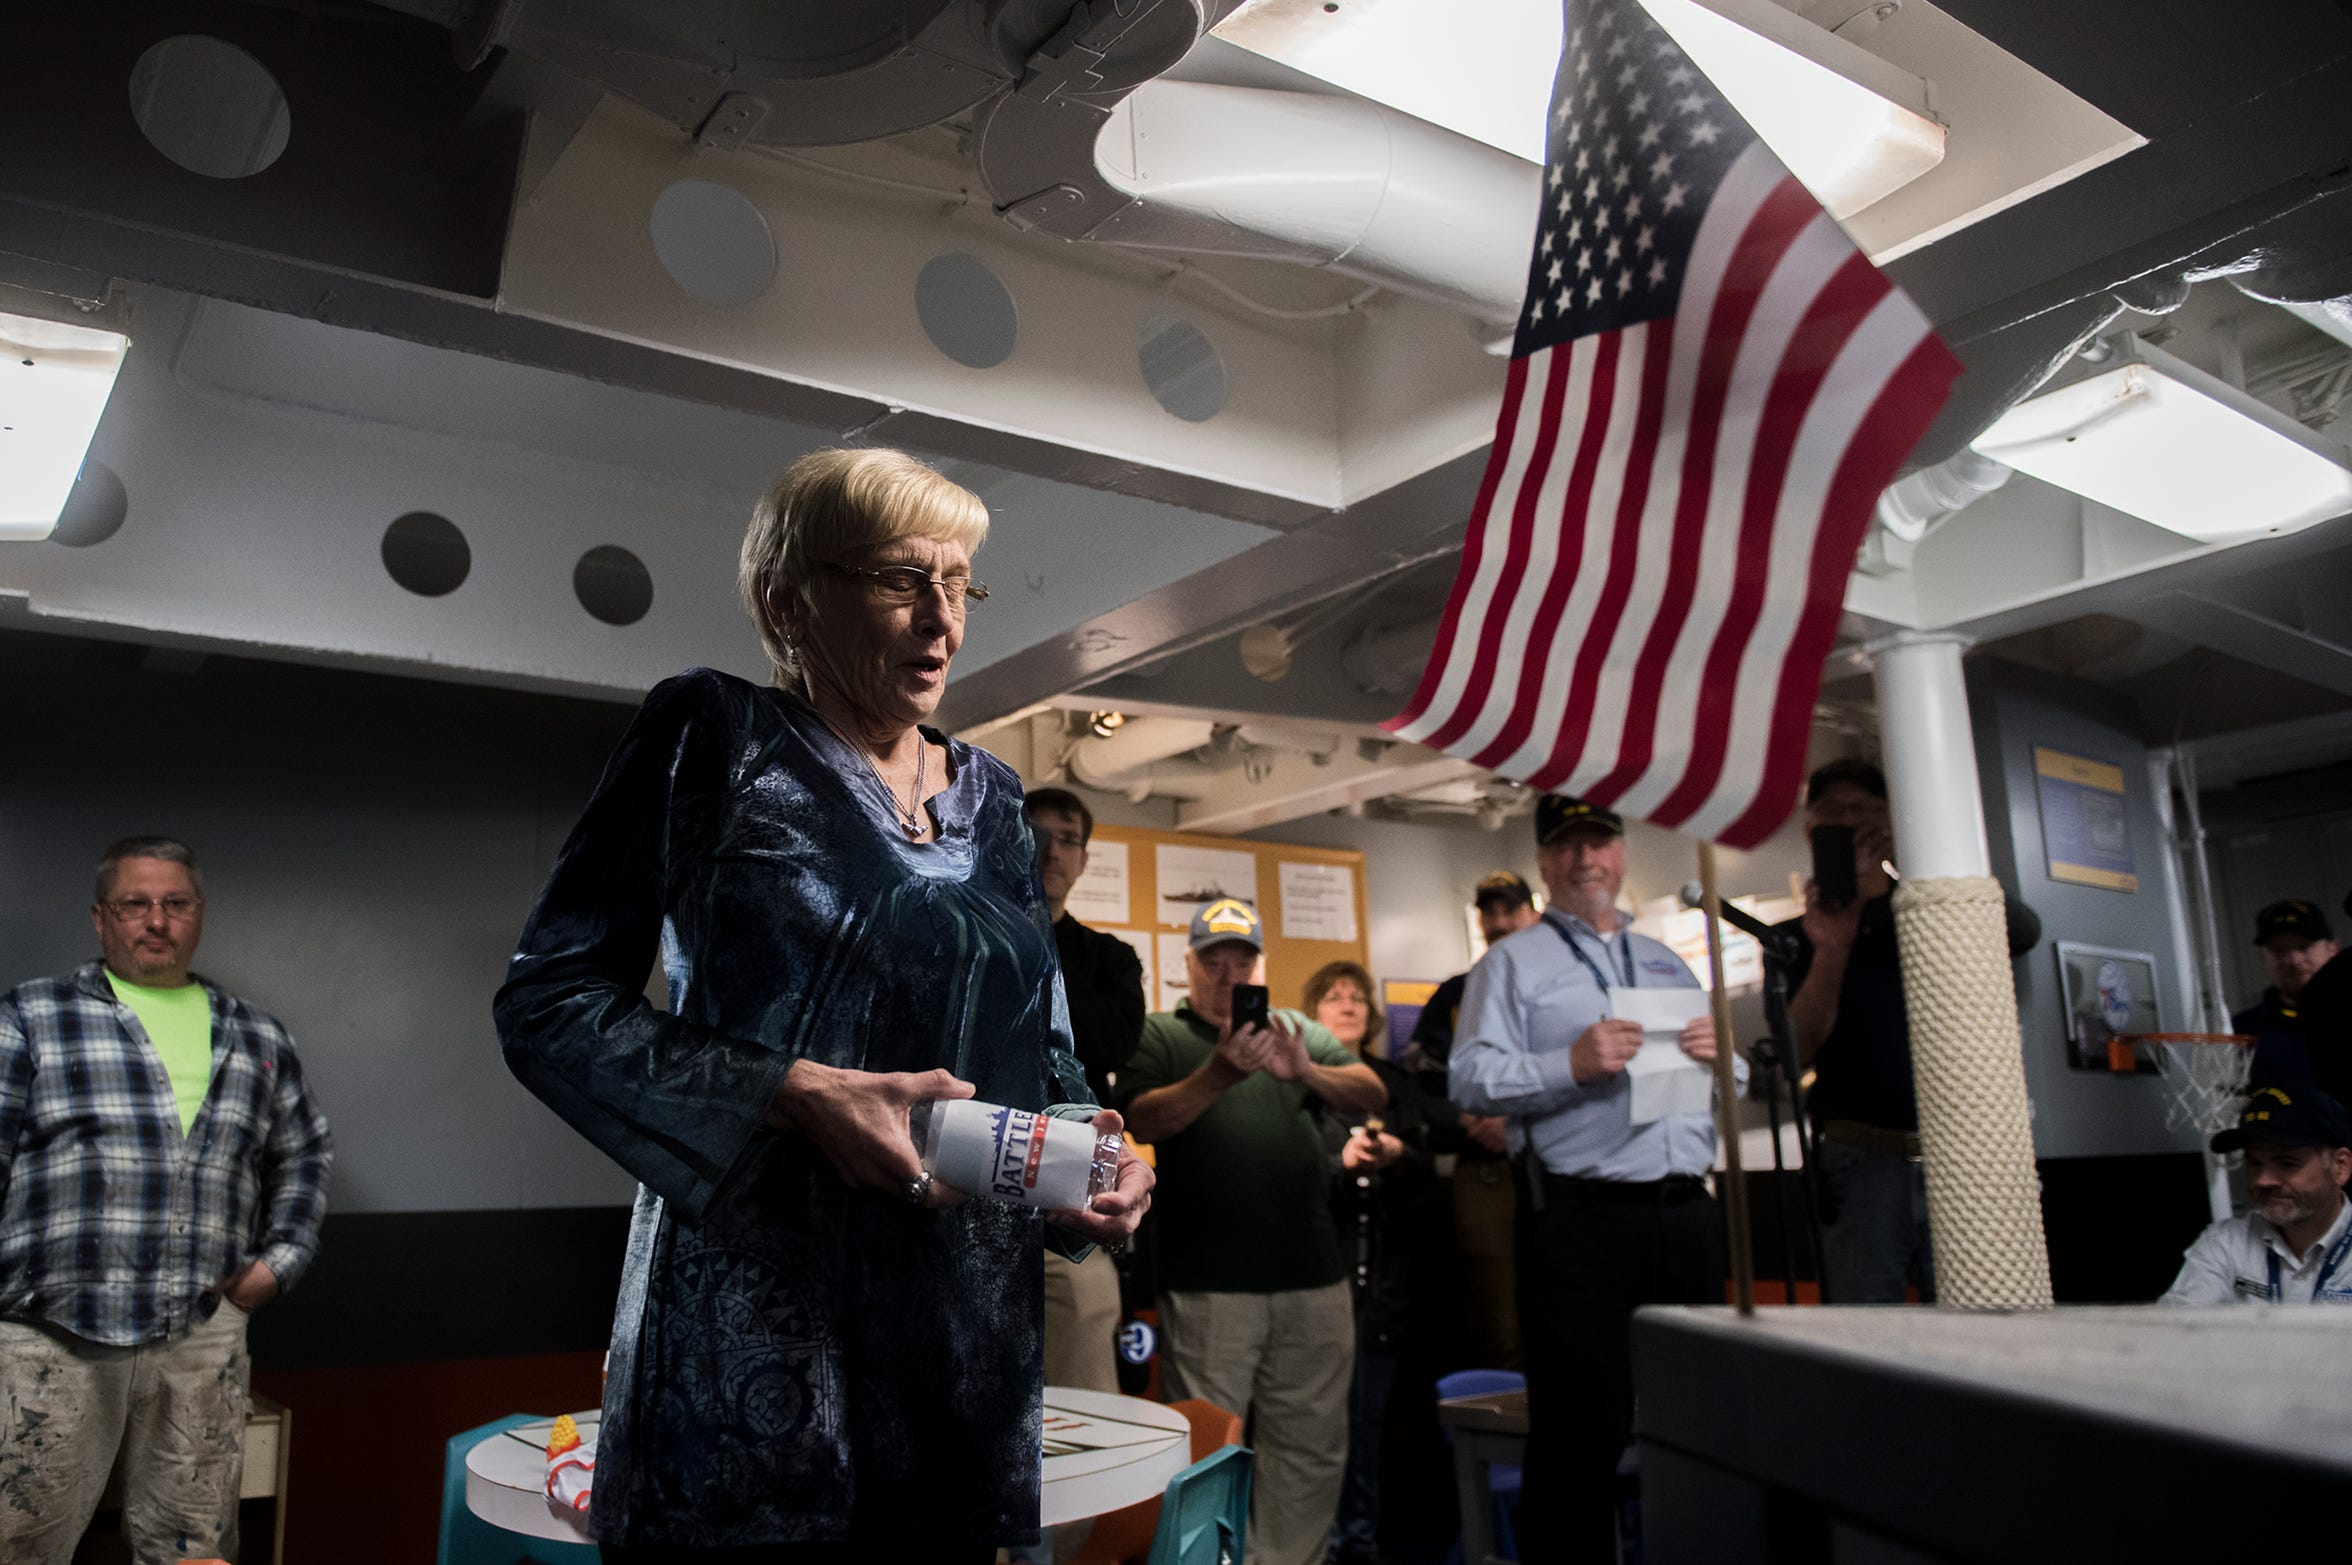 Denise Hall pauses for a moment before 'christening the ship' inside Jason's Kids Kompartment Thursday, March 21, 2019 aboard the USS New Jersey battleship in Camden, N.J. Denise Hall's son Jason Hall was the ship's curator and came up with the idea for the play area. Jason died of cancer in June 2018.